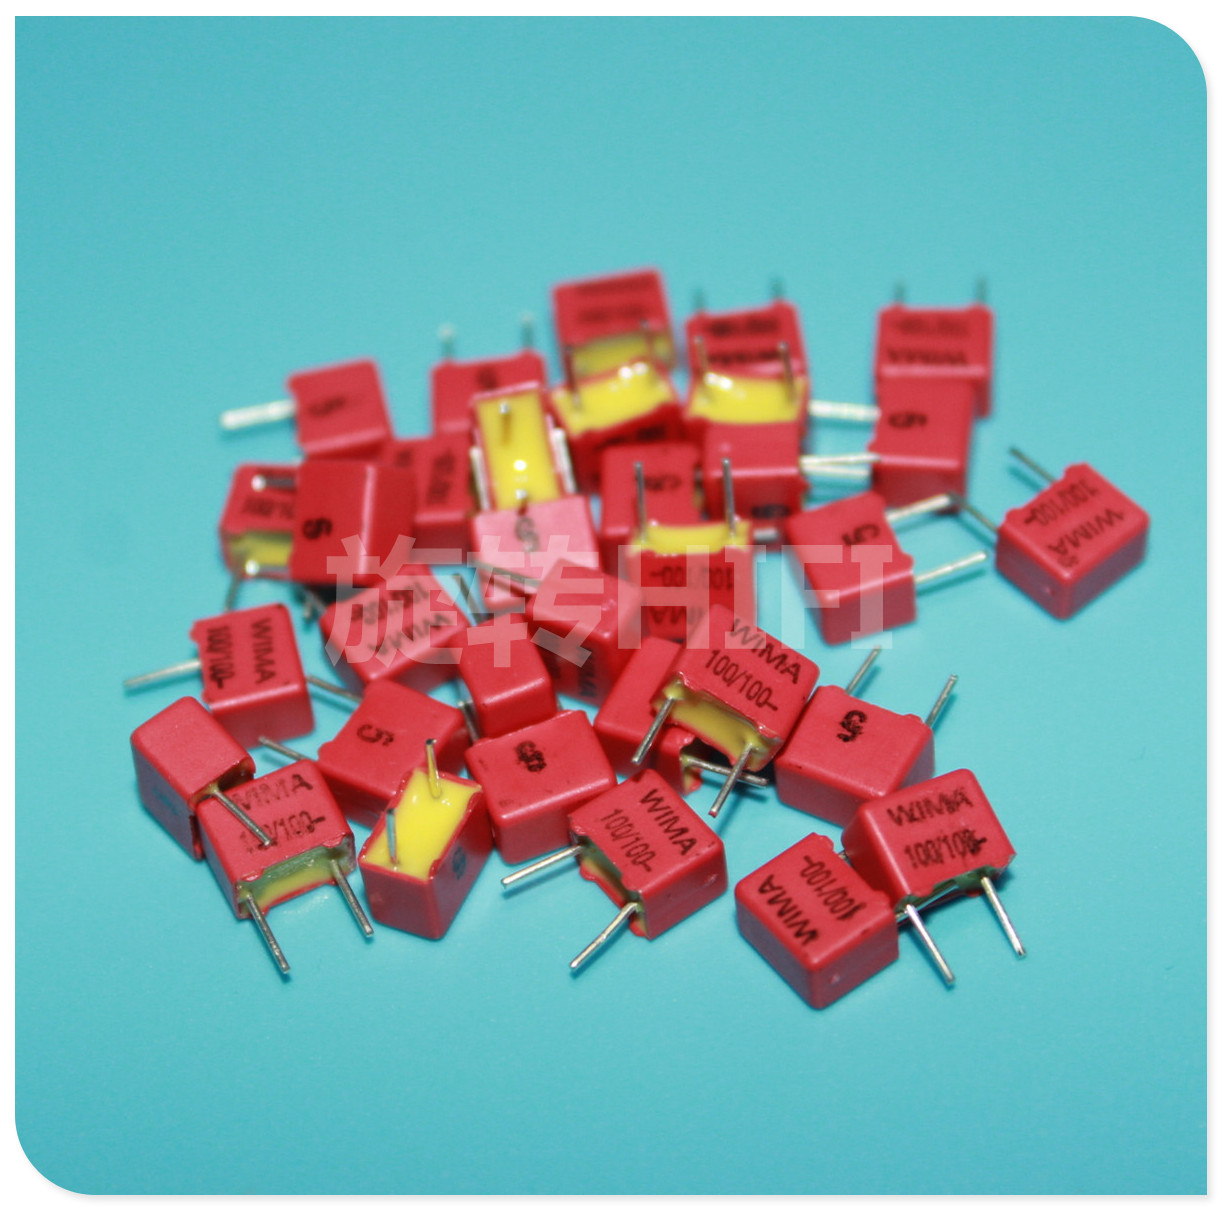 20PCS WIMA FKP2 100pf 0.1nf 101/100v new audio fever coupling capacitor p5 free shipping